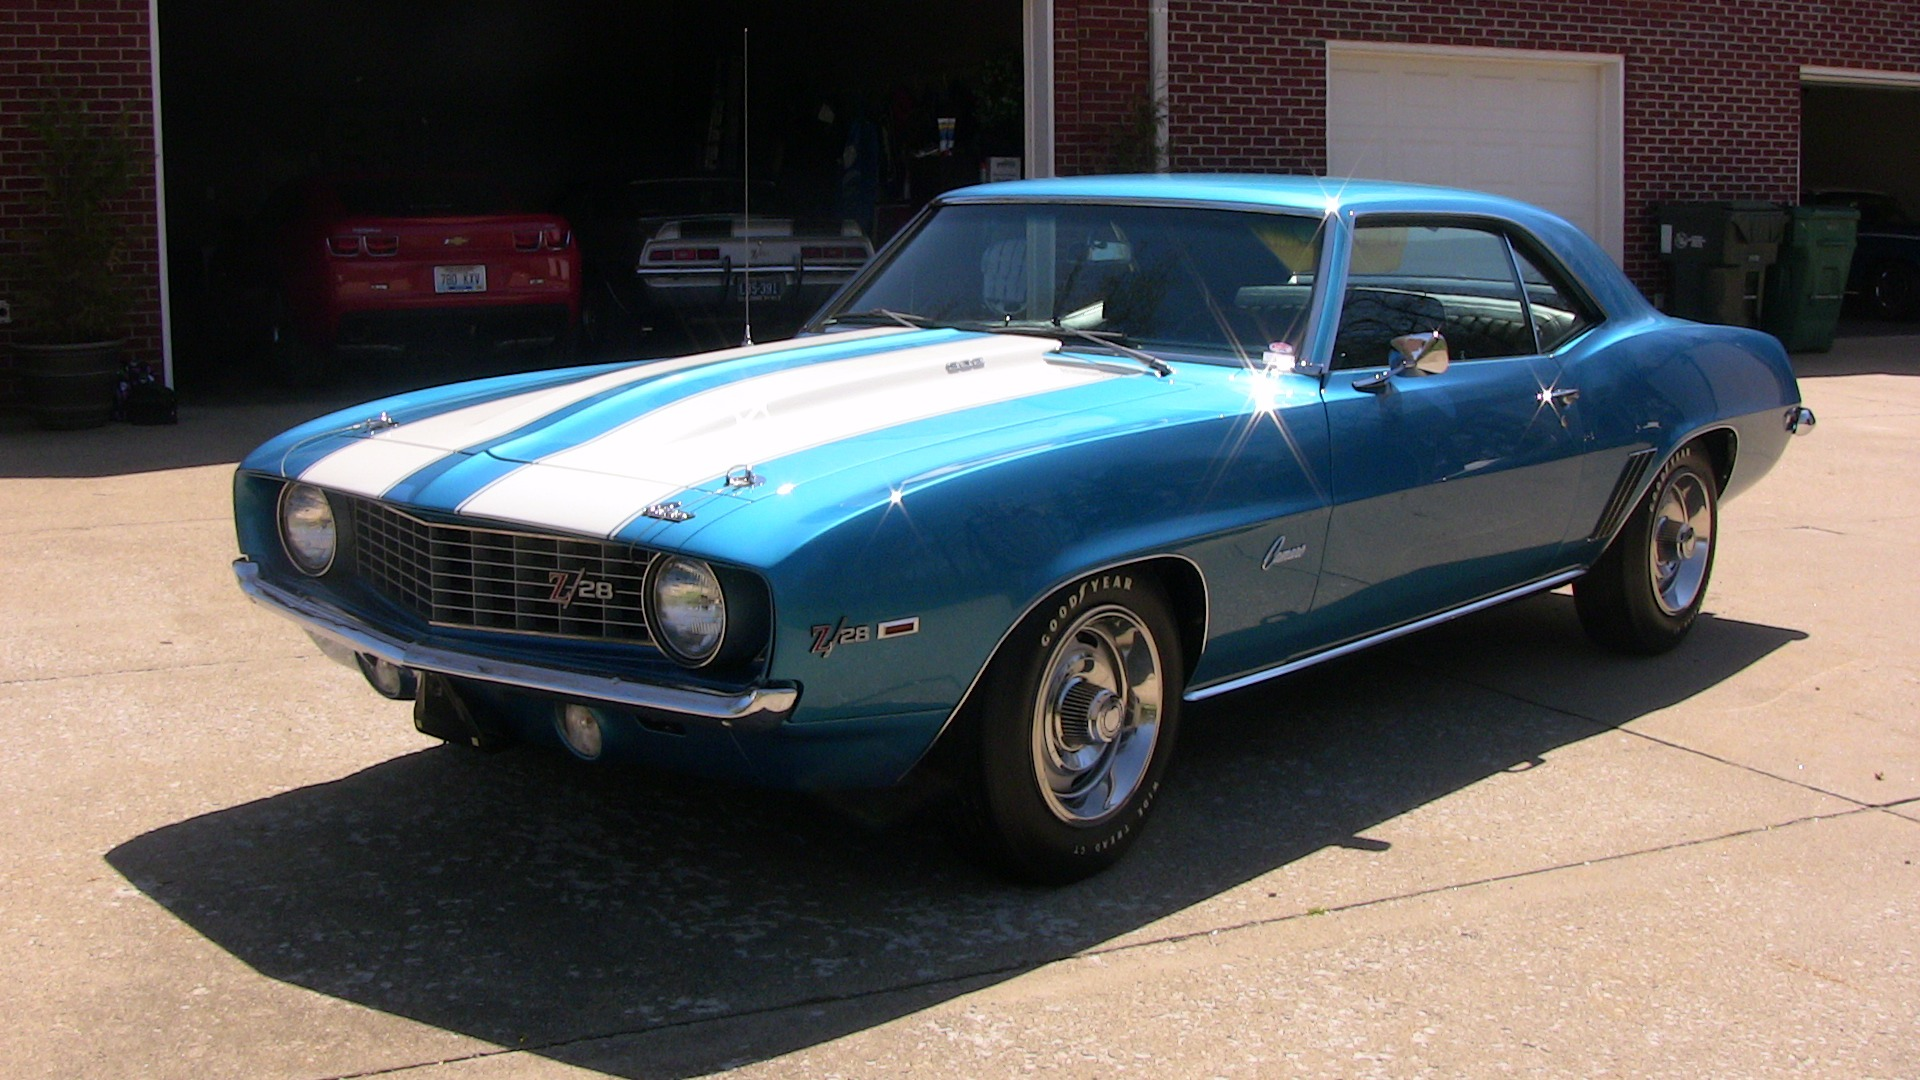 1969 chevrolet camaro z28 stock a133 for sale near cornelius nc nc chevrolet dealer. Black Bedroom Furniture Sets. Home Design Ideas